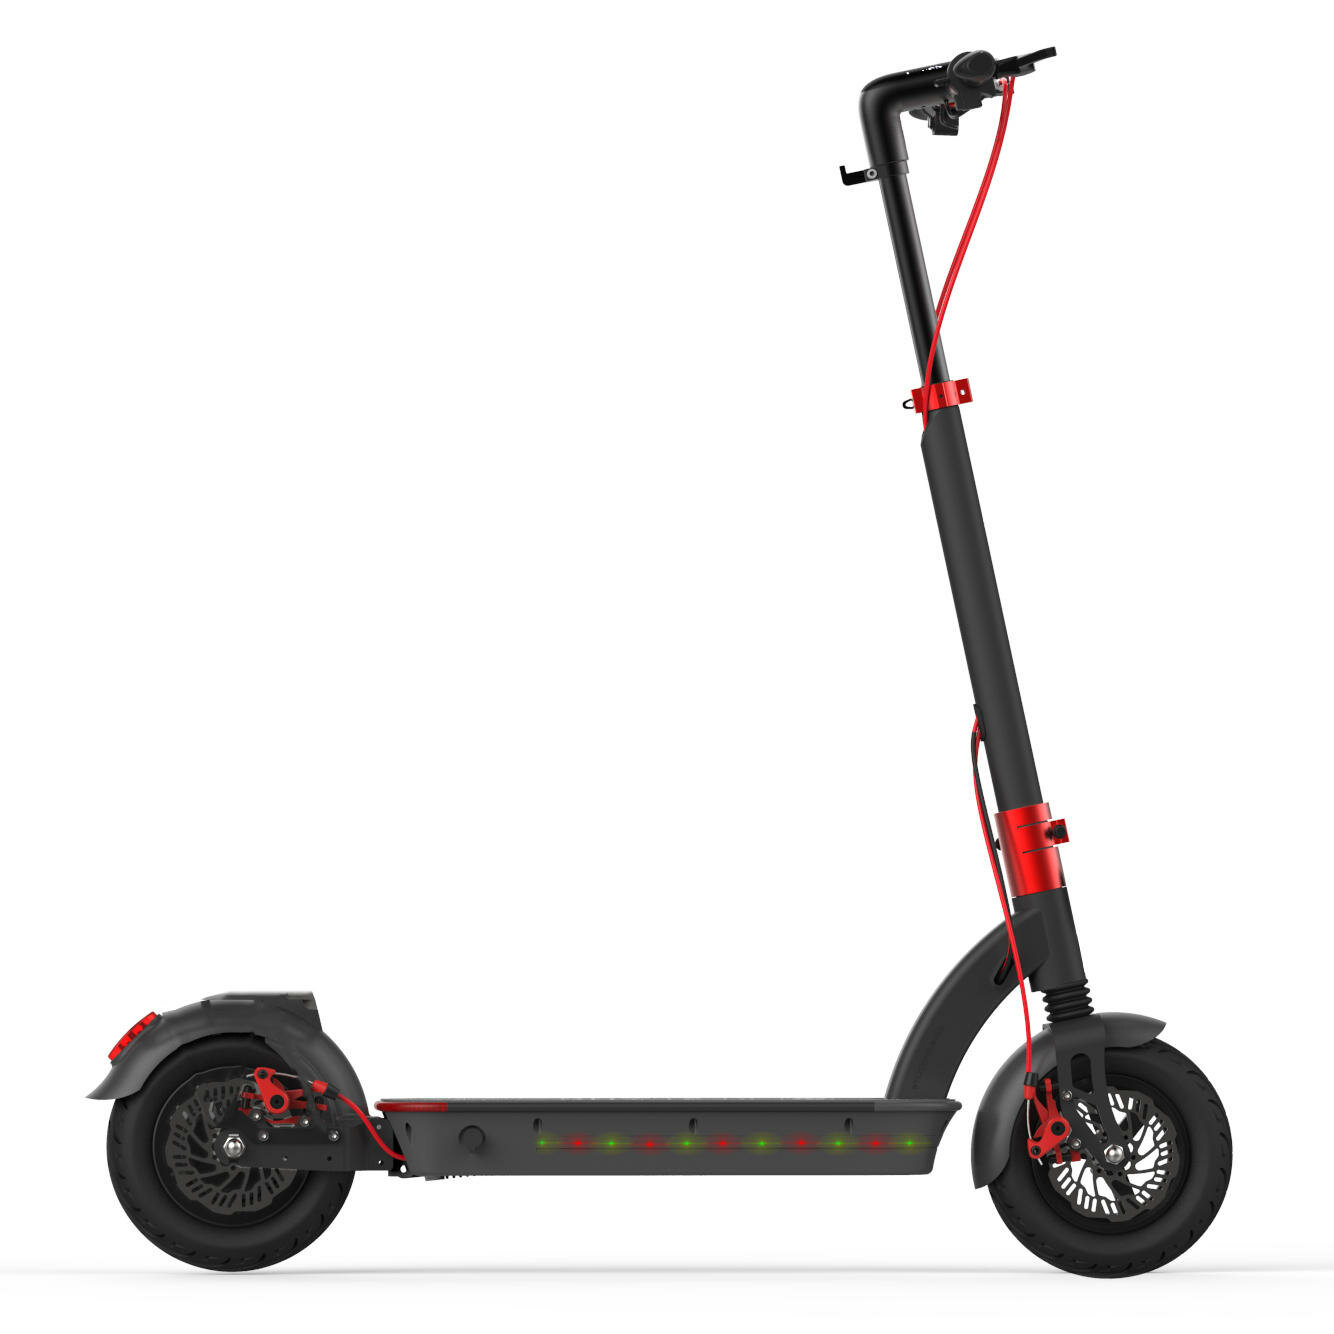 Aerlang H6 48V 500W 17 5A Folding Electric Scooter 10inch 40km/h Top Speed  50-60km Mileage Range Max  Load 120kg Two Wheels Electric Scooter